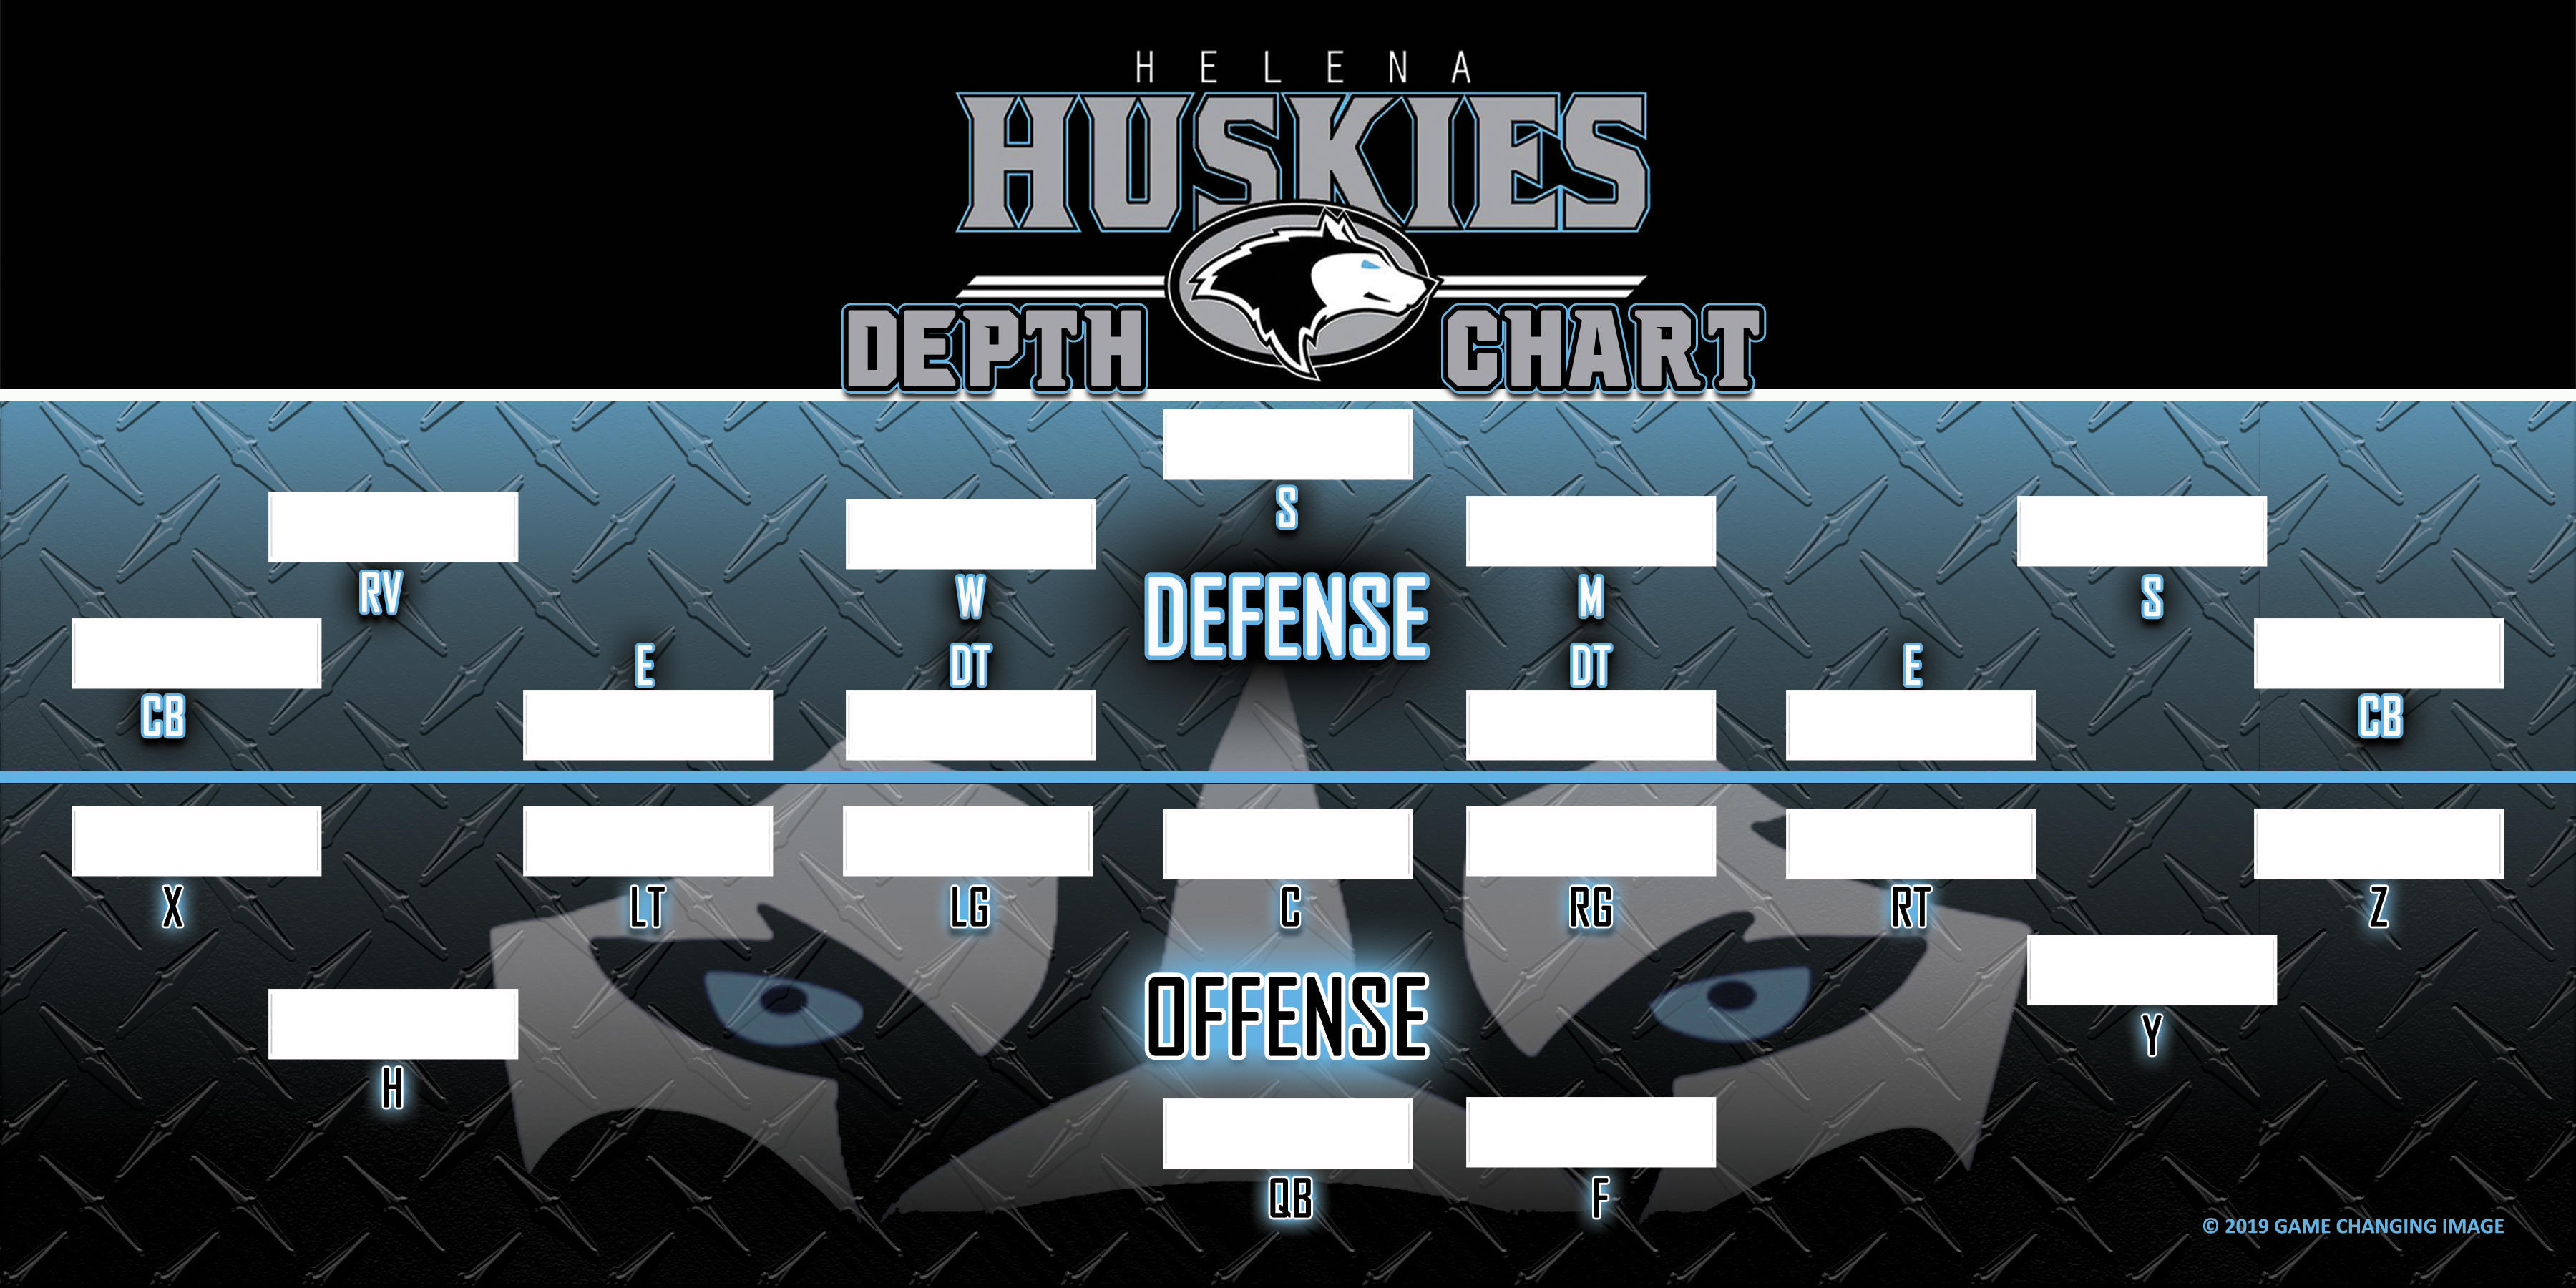 HELENA HUSKIES DEPTH CHART PROOF